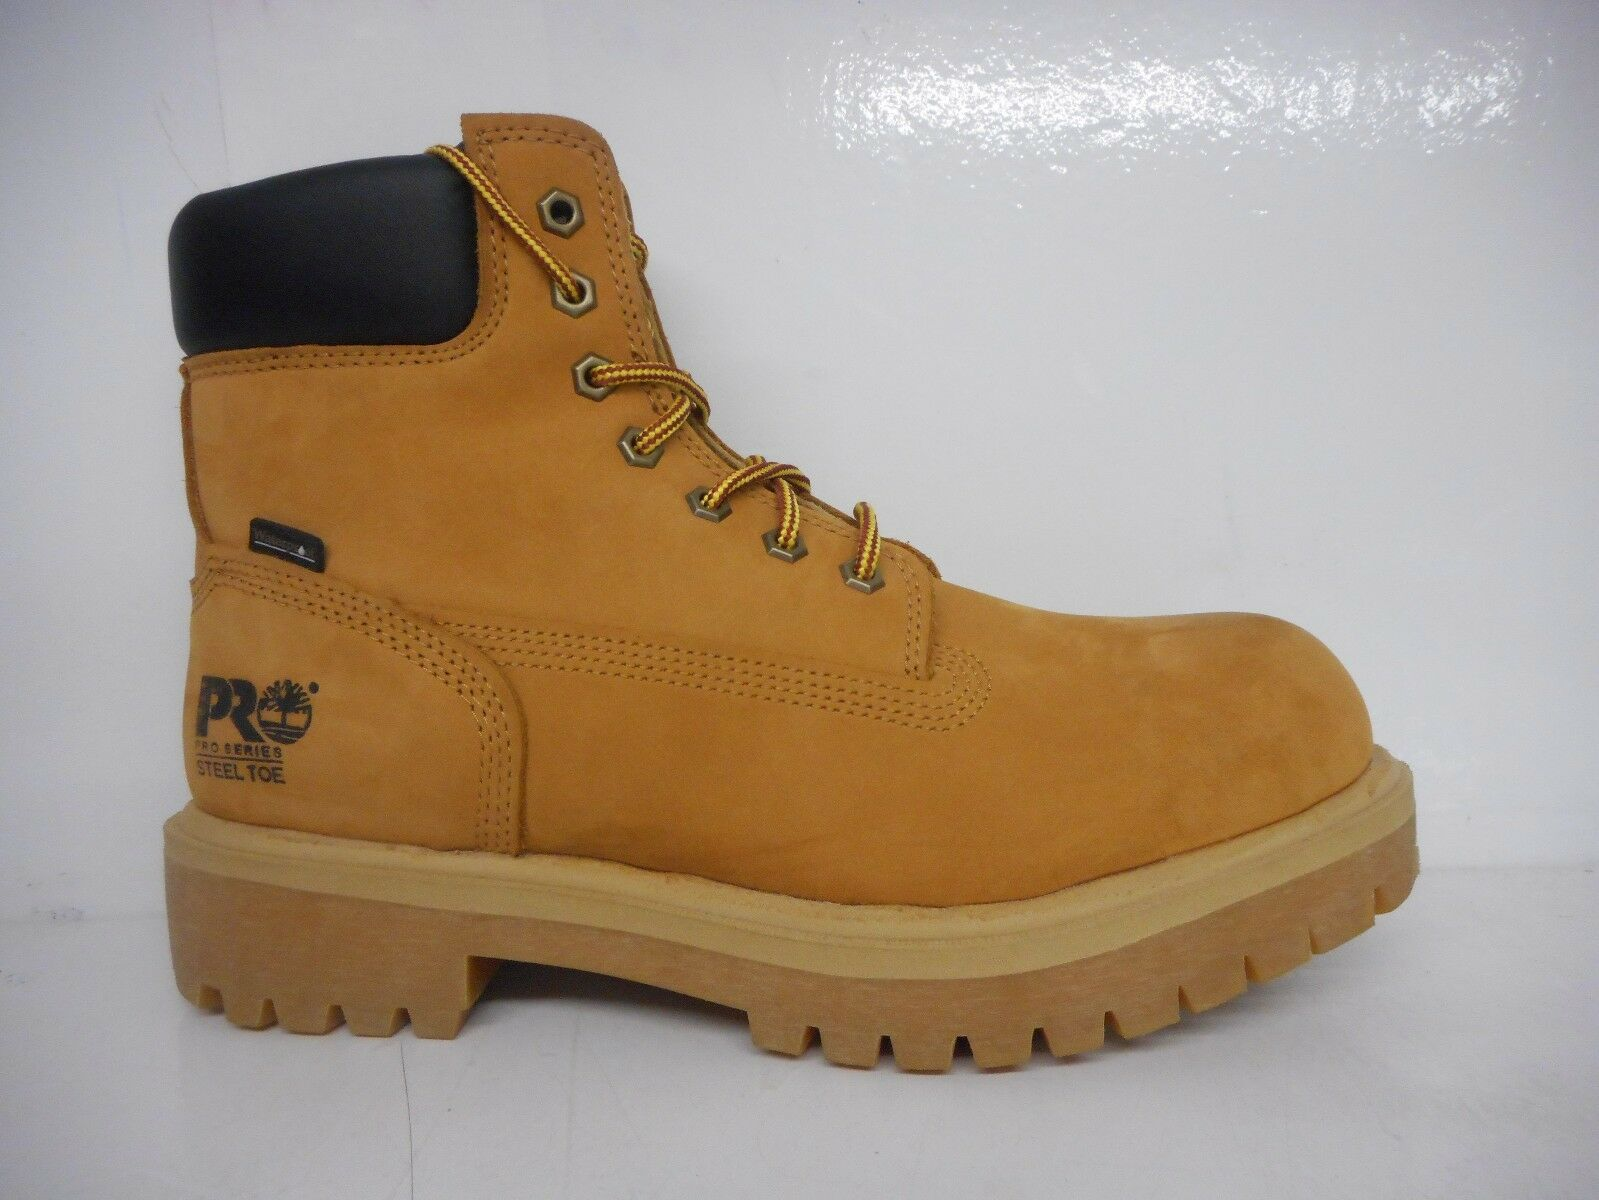 Timberland pro direct attach 6 steel toe boots 65016 85 m ebay picture 1 of 6 biocorpaavc Images